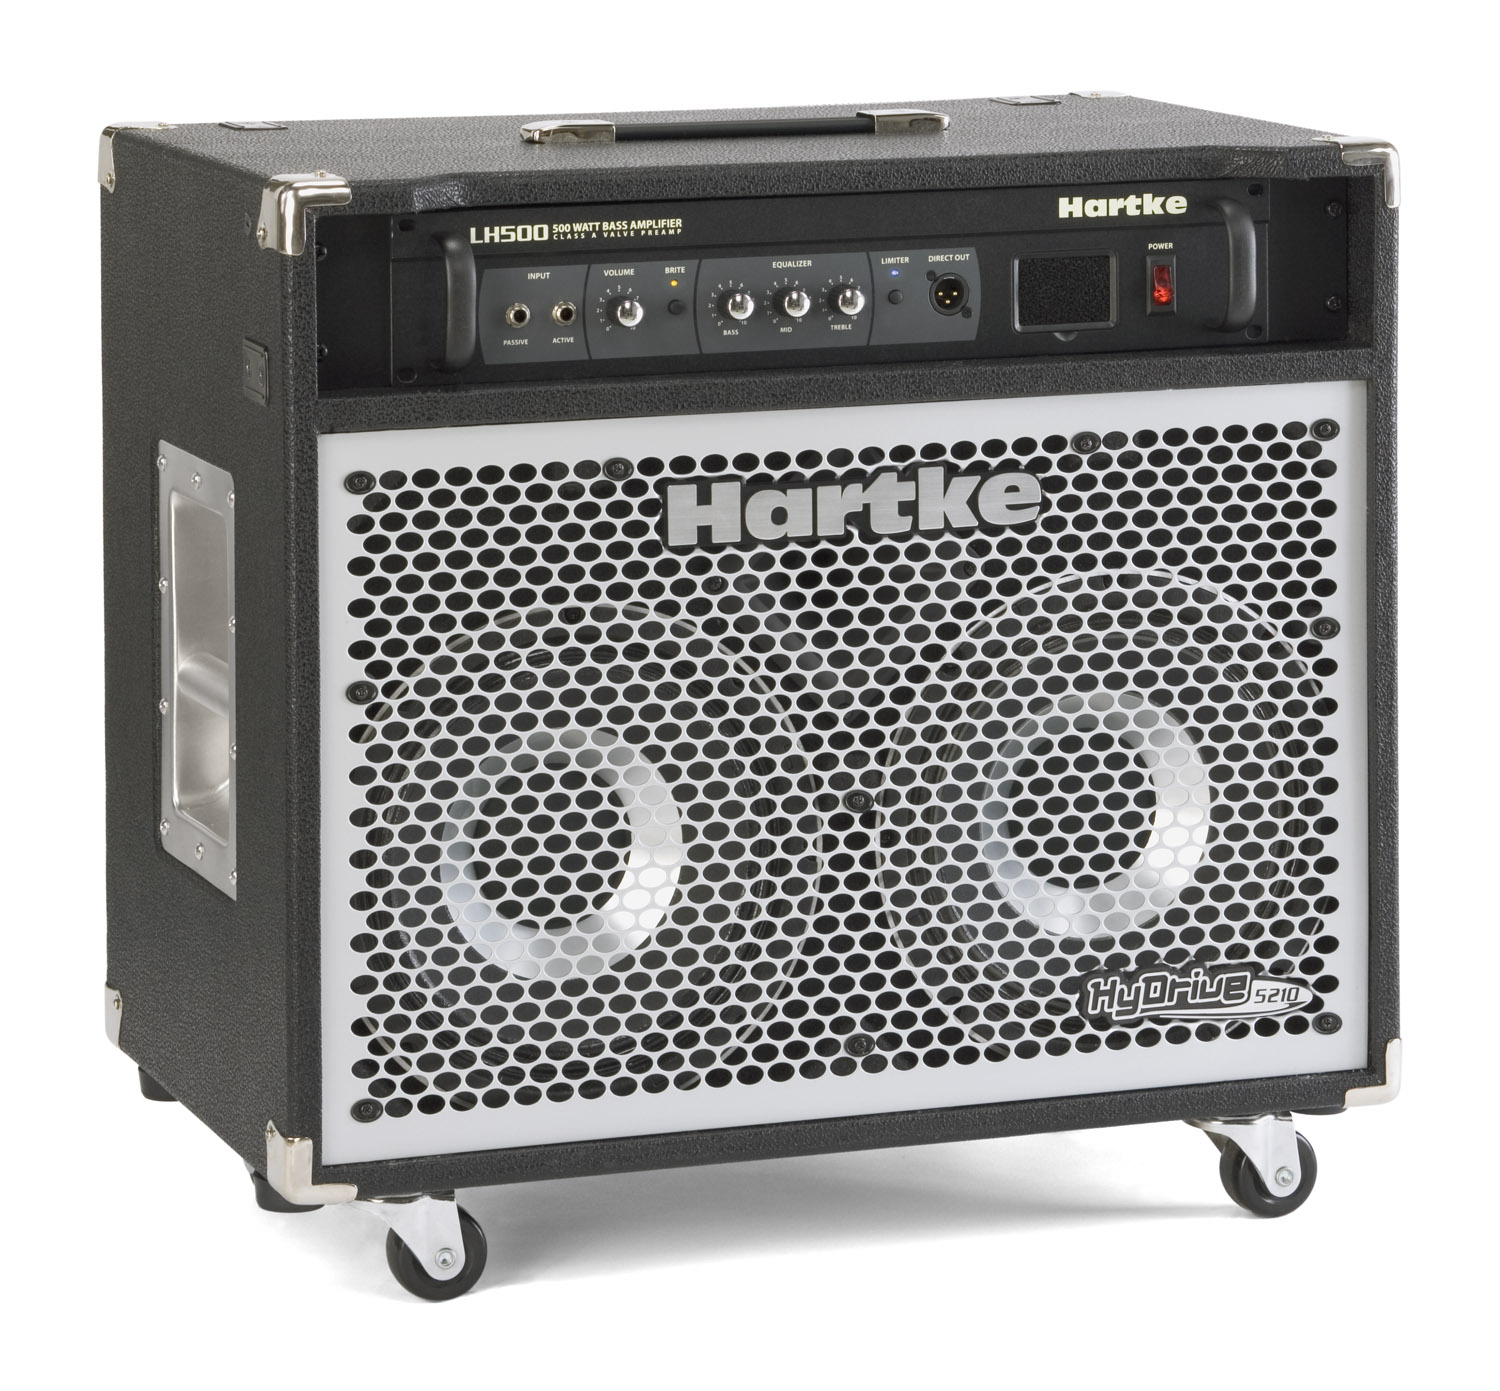 Hartke Hydrive 5210c Audio Power Amp Mid High Amplifier Portable Speaker